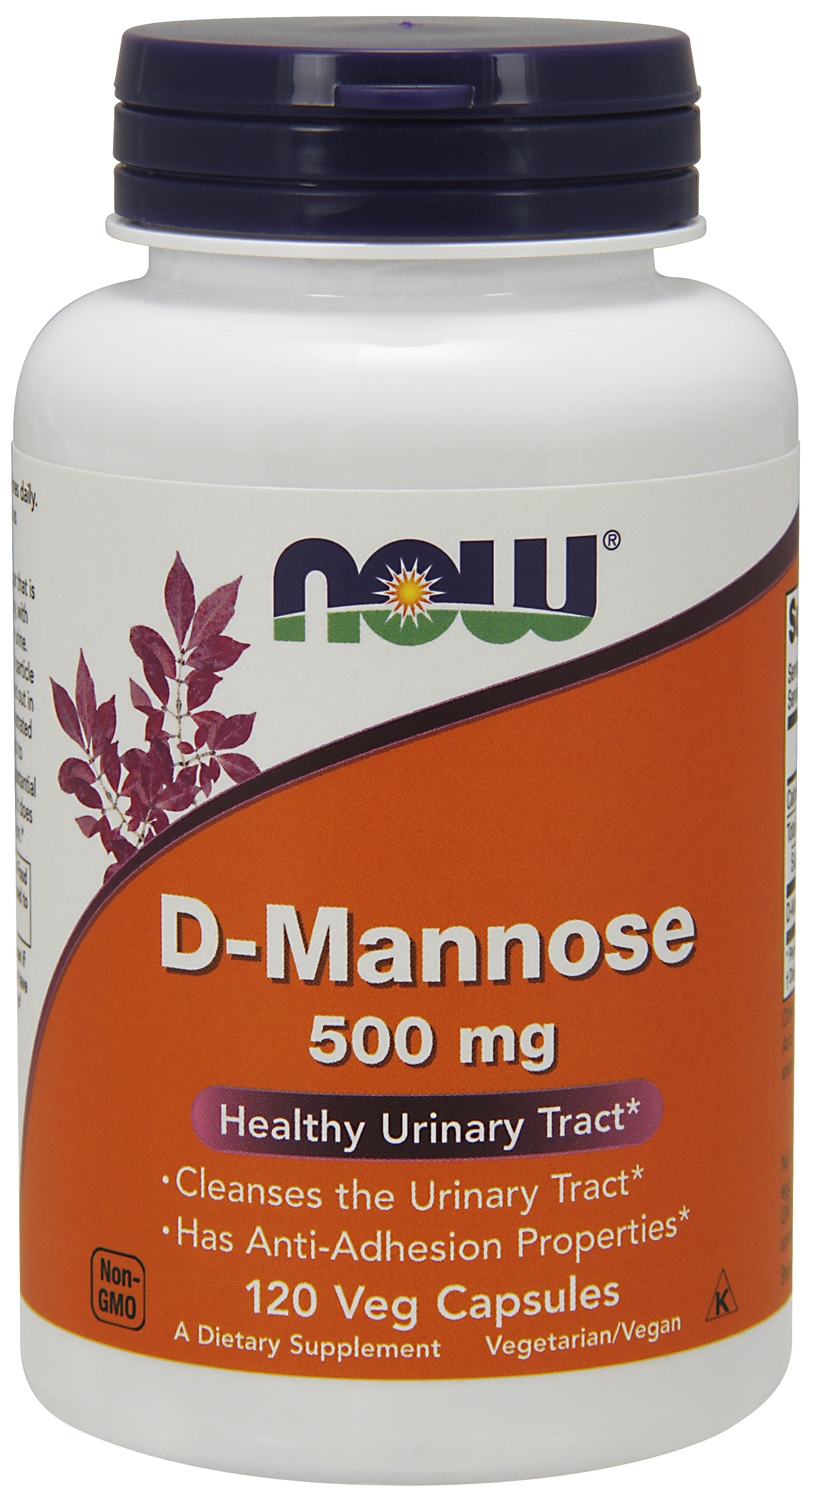 D-Mannose 500 mg 120 caps by NOW